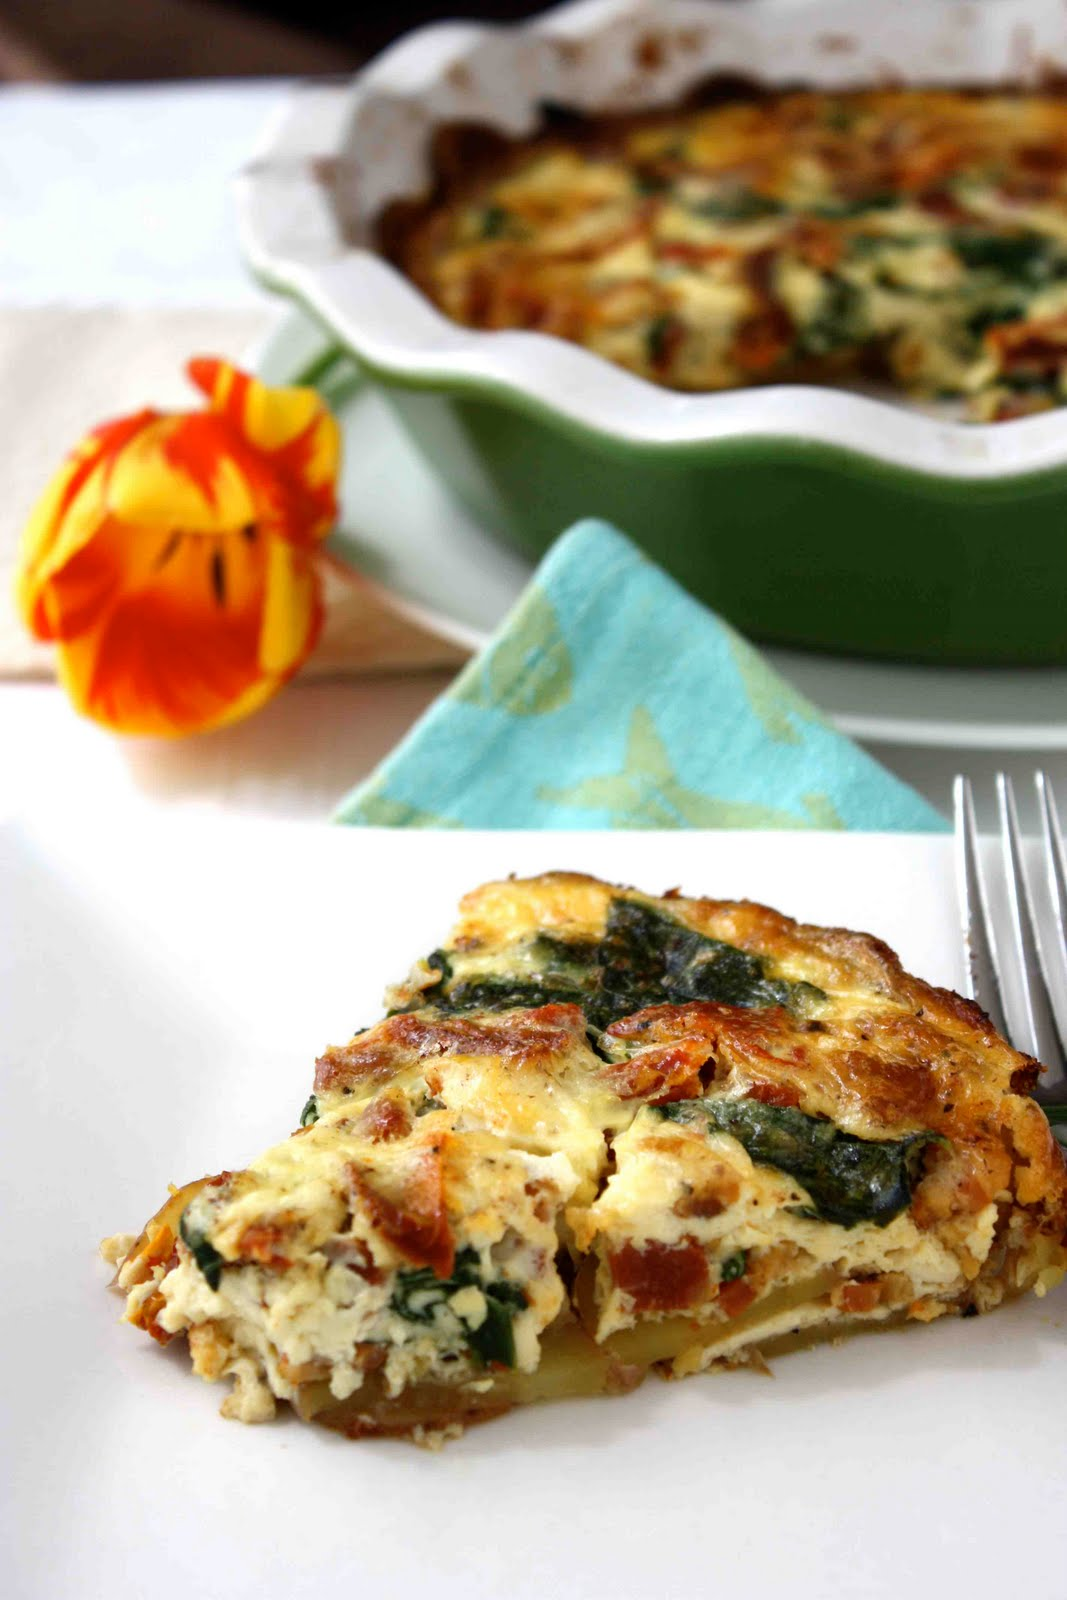 Tomato, Spinach, And Dill Quiche With A Shredded Potato Crust Recipe ...